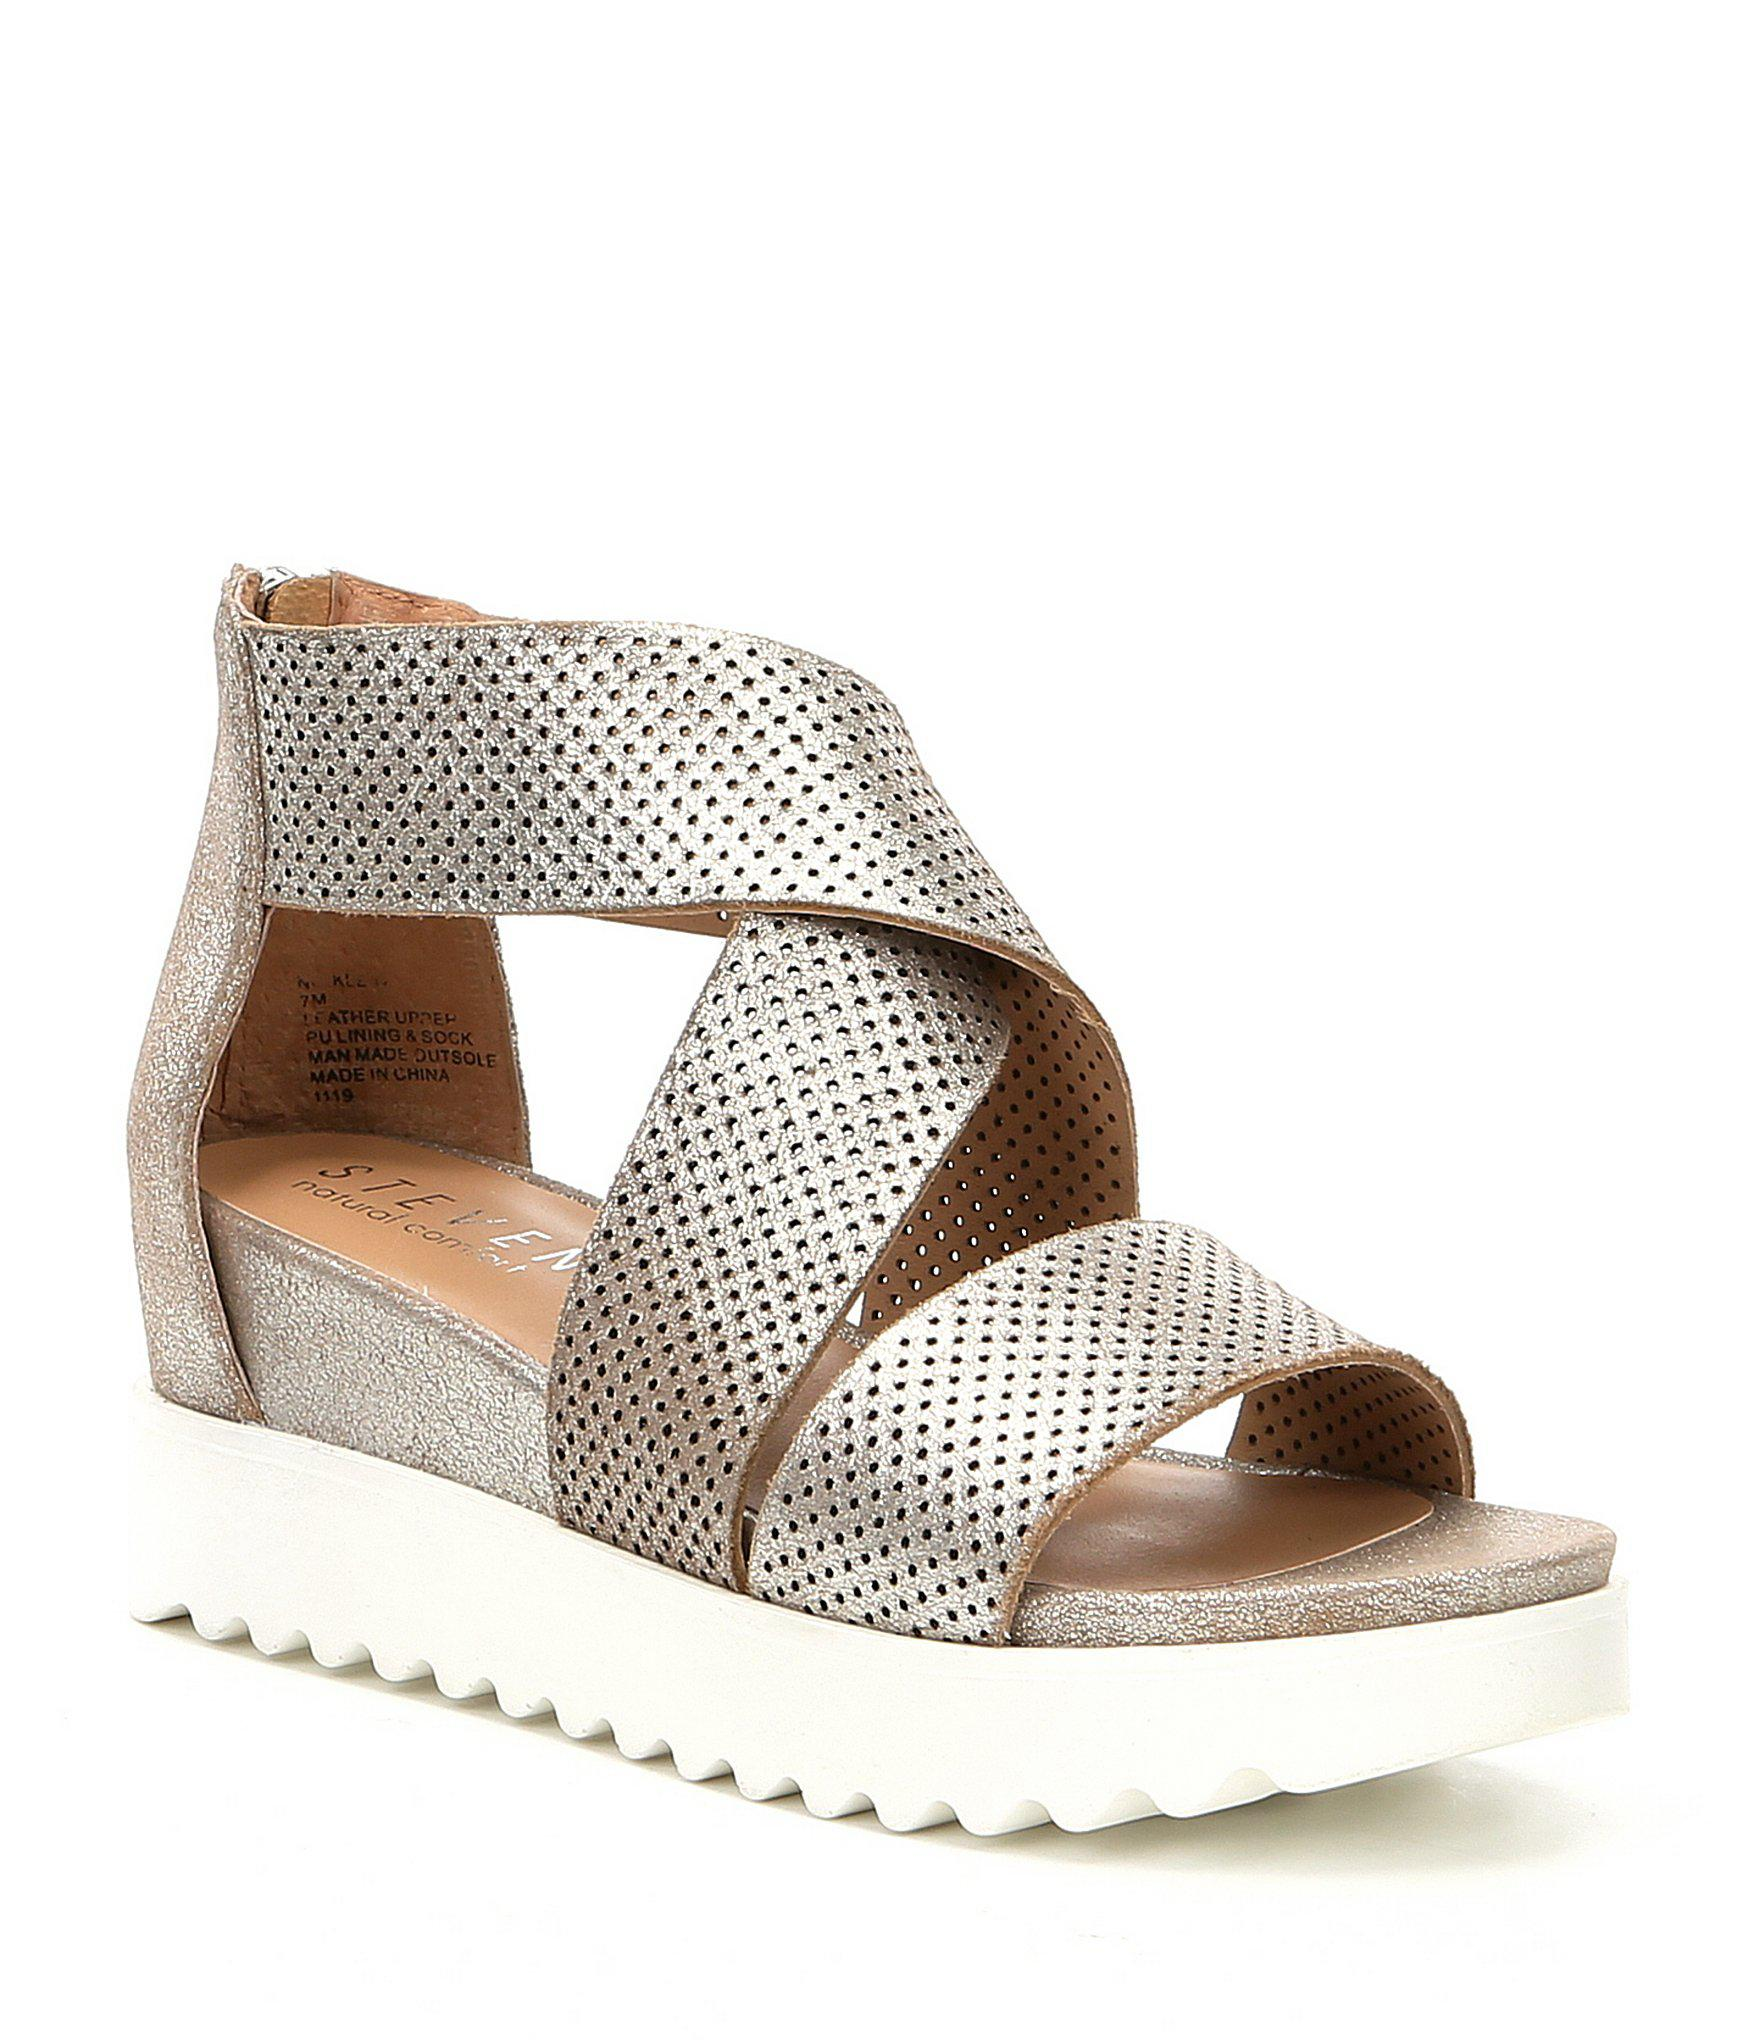 5d661b648d5 Lyst - Steve Madden Steven By Nc-klein Perforated Platform Wedge ...